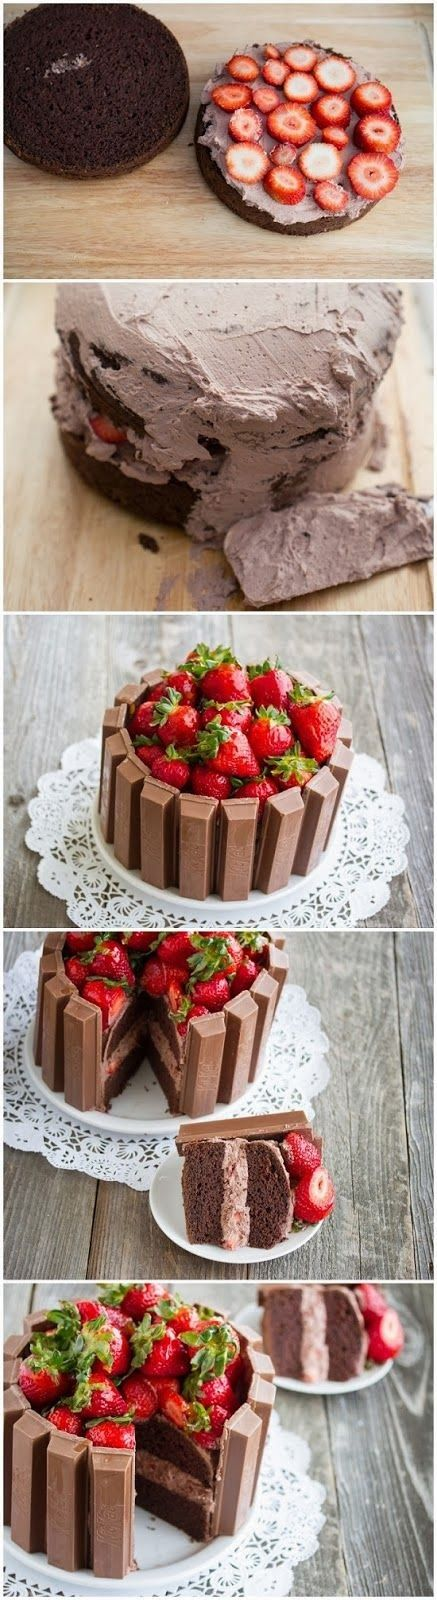 #Strawberry Kit Kat #Cake